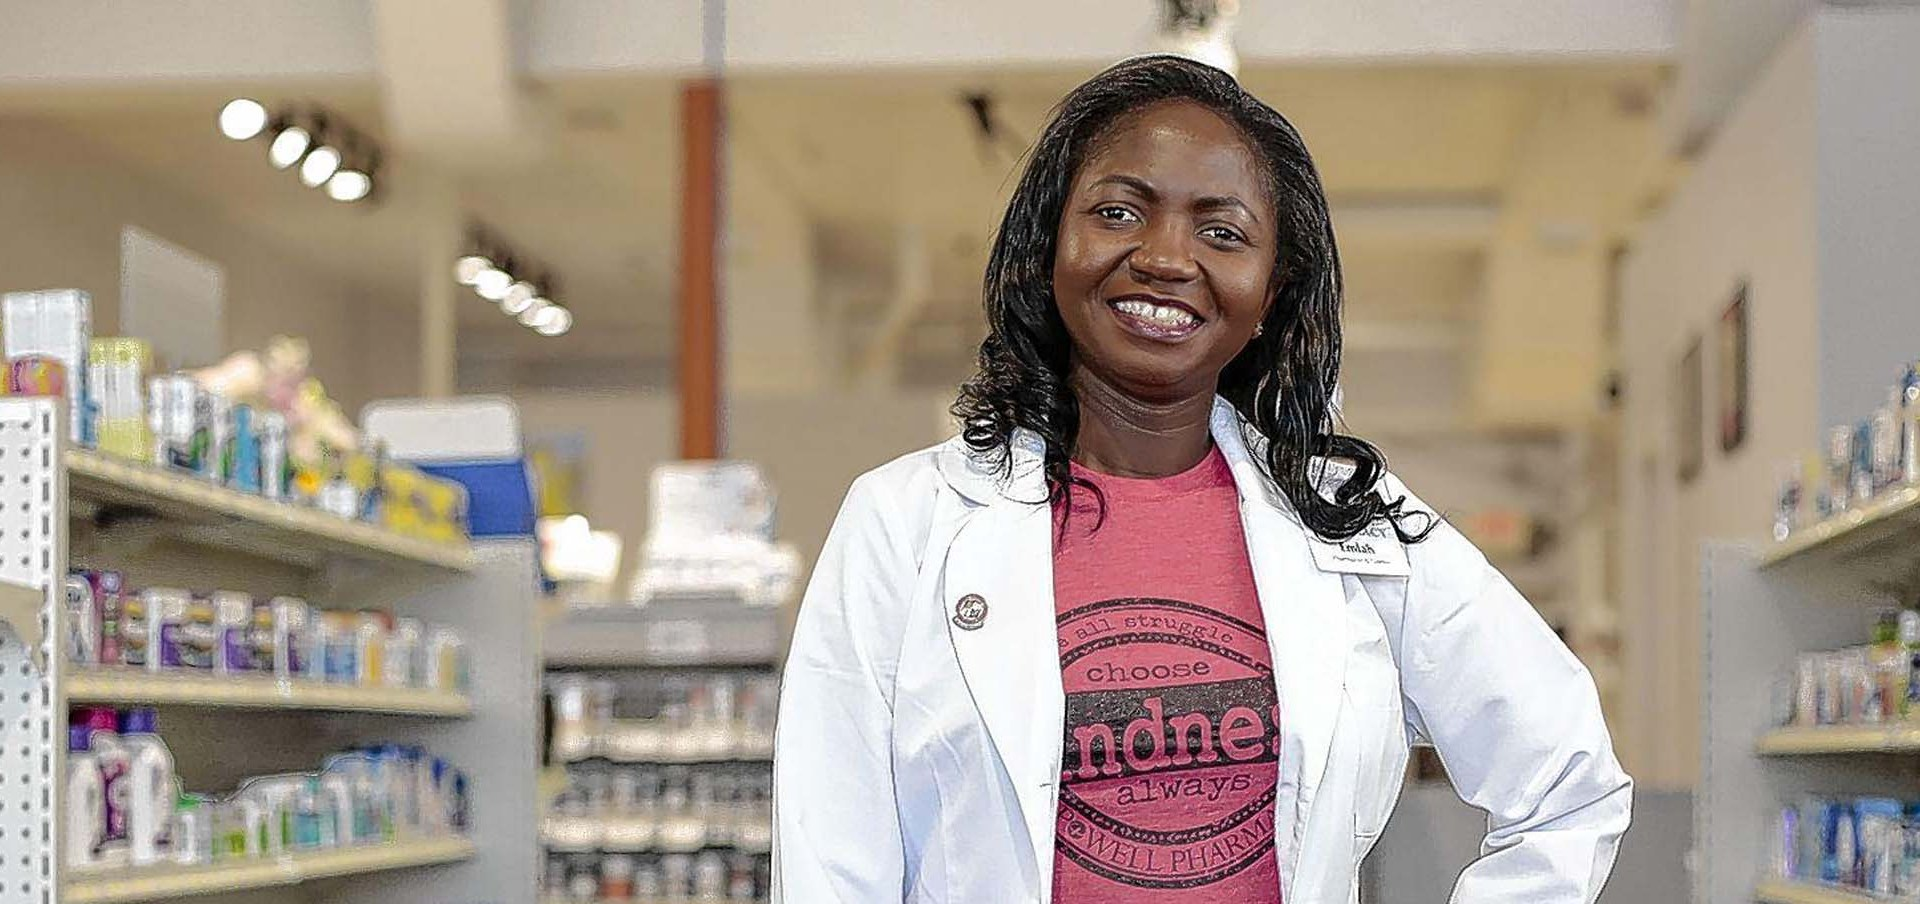 Cameroonian, Emlah Tubuo Overcomes the Storm to become A Successful Drug Store Owner in the US